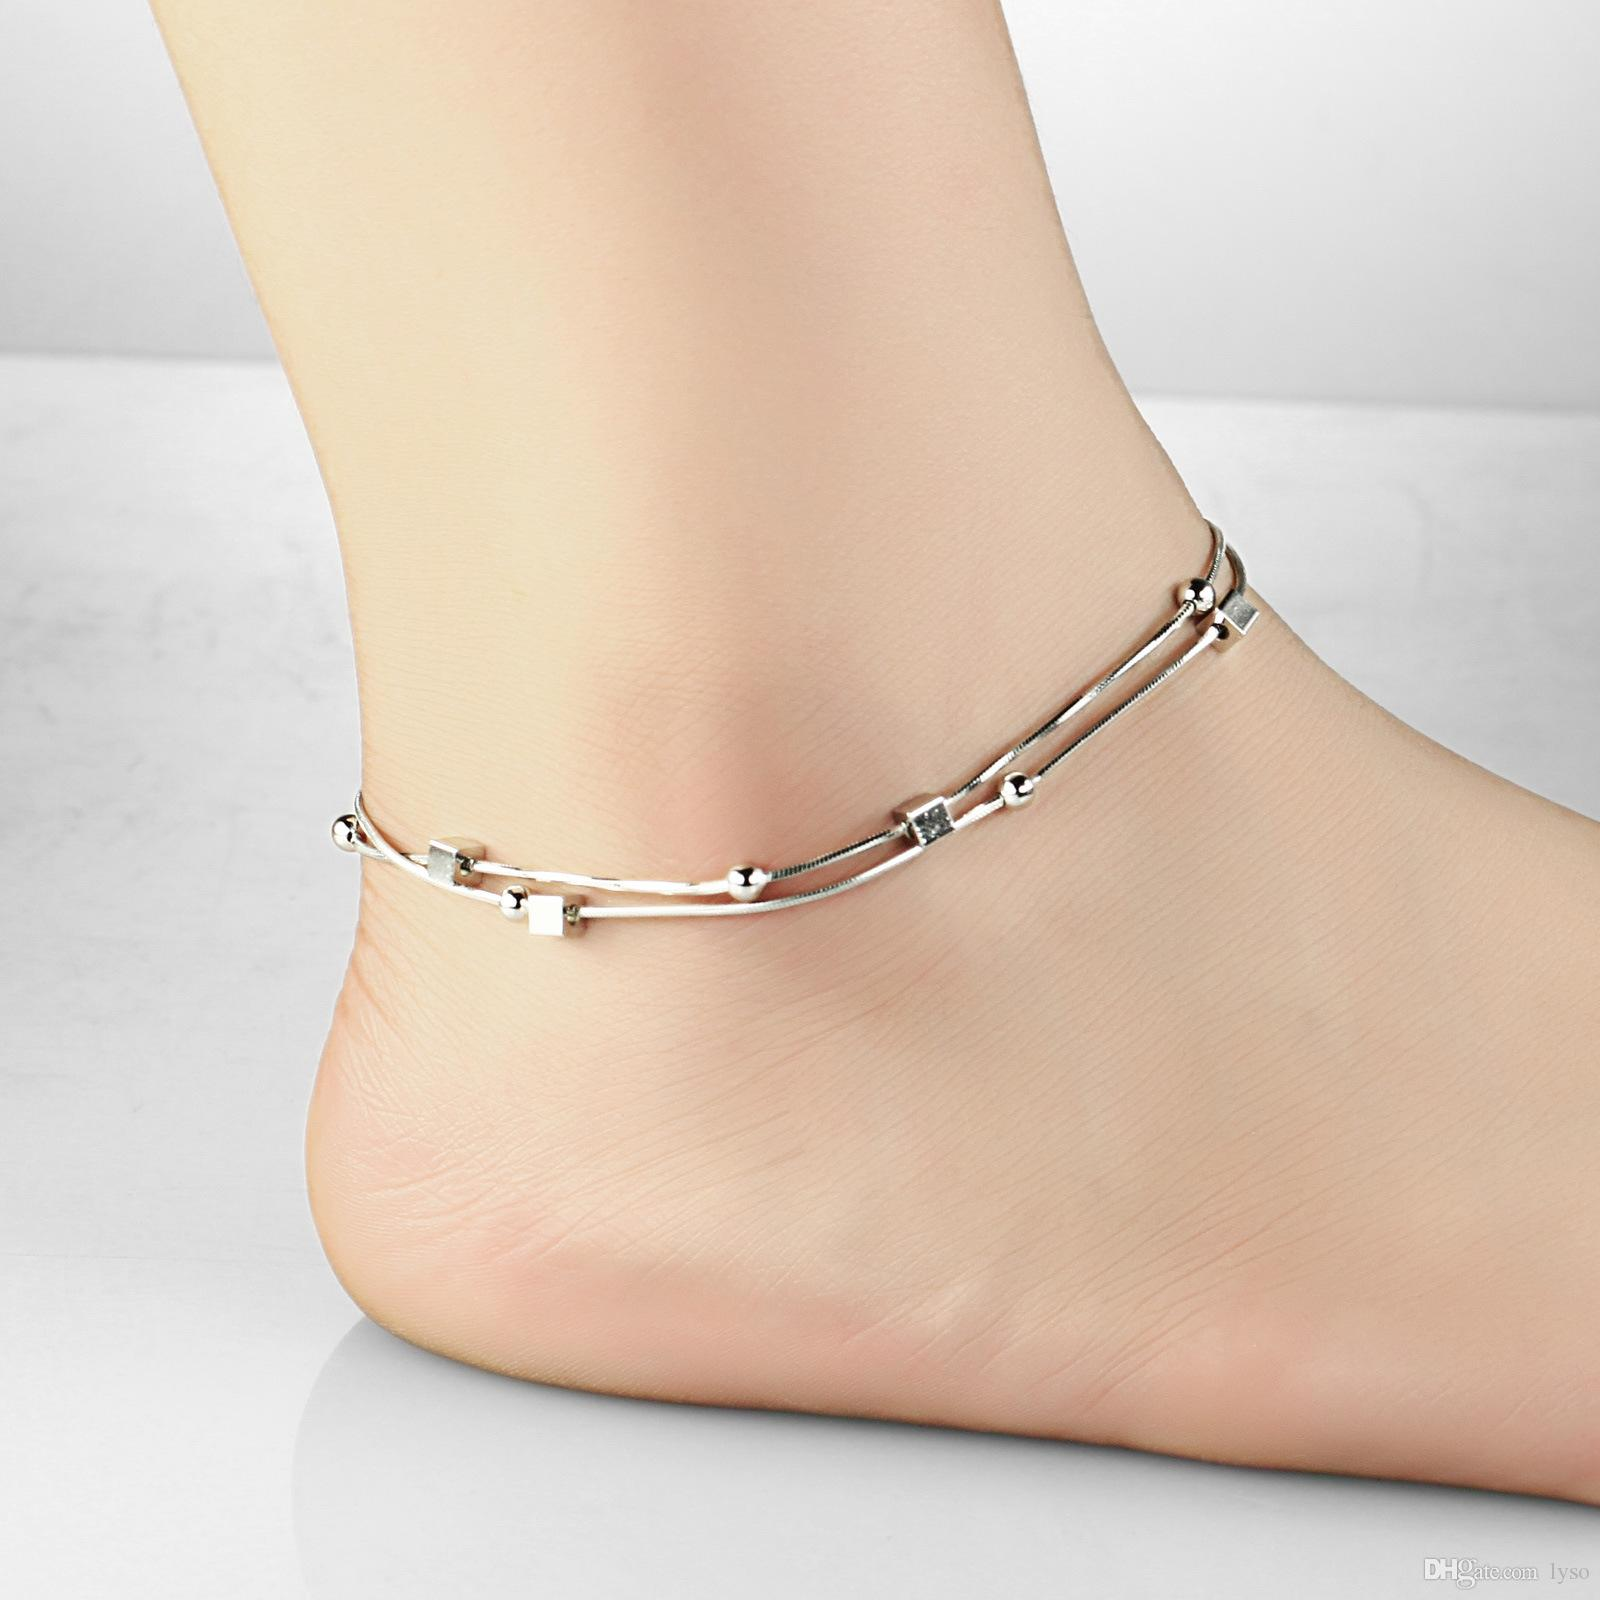 buy prices jewellery at toran winsant plated design colourful product traditional thumb silver bridal on anklet ethnic only for designer in india dzinetrendz women handmade low